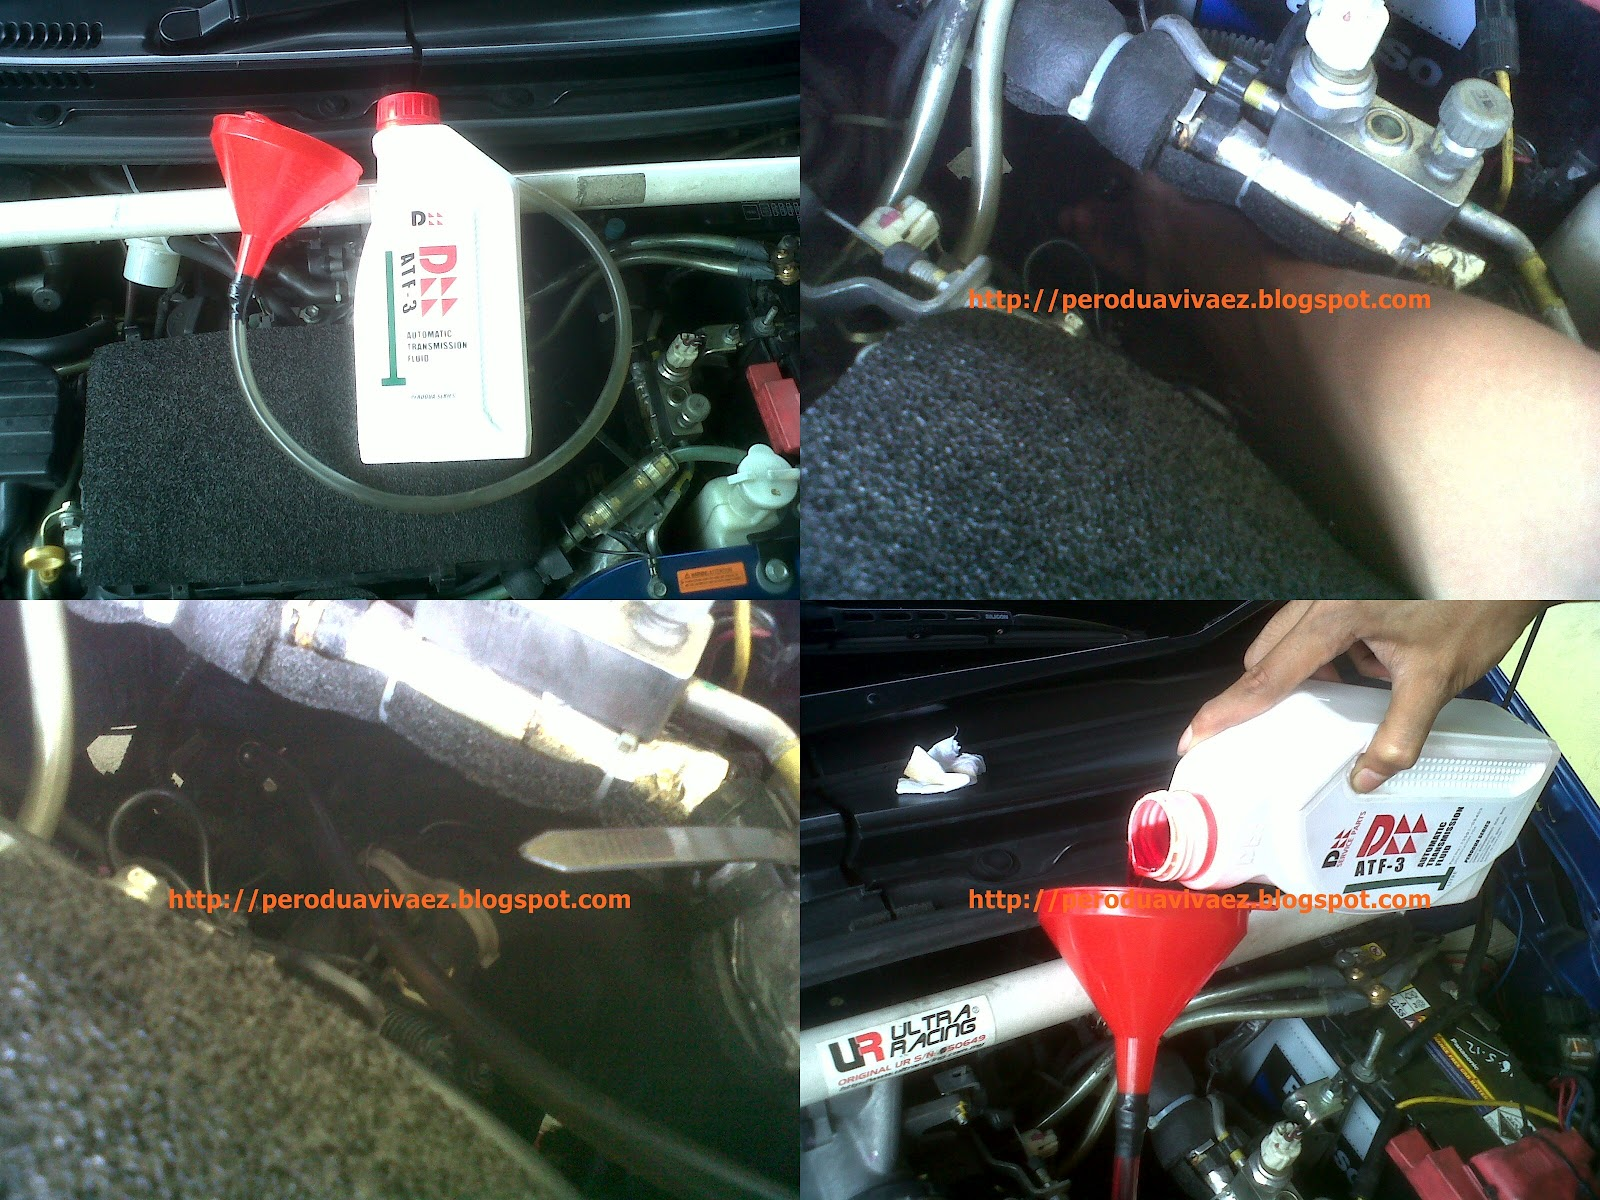 The journey begins it is time to change atf it is already time to change the automatic transmission fluid atf this time i would like to share how to do it yourself my advice is to change the solutioingenieria Image collections